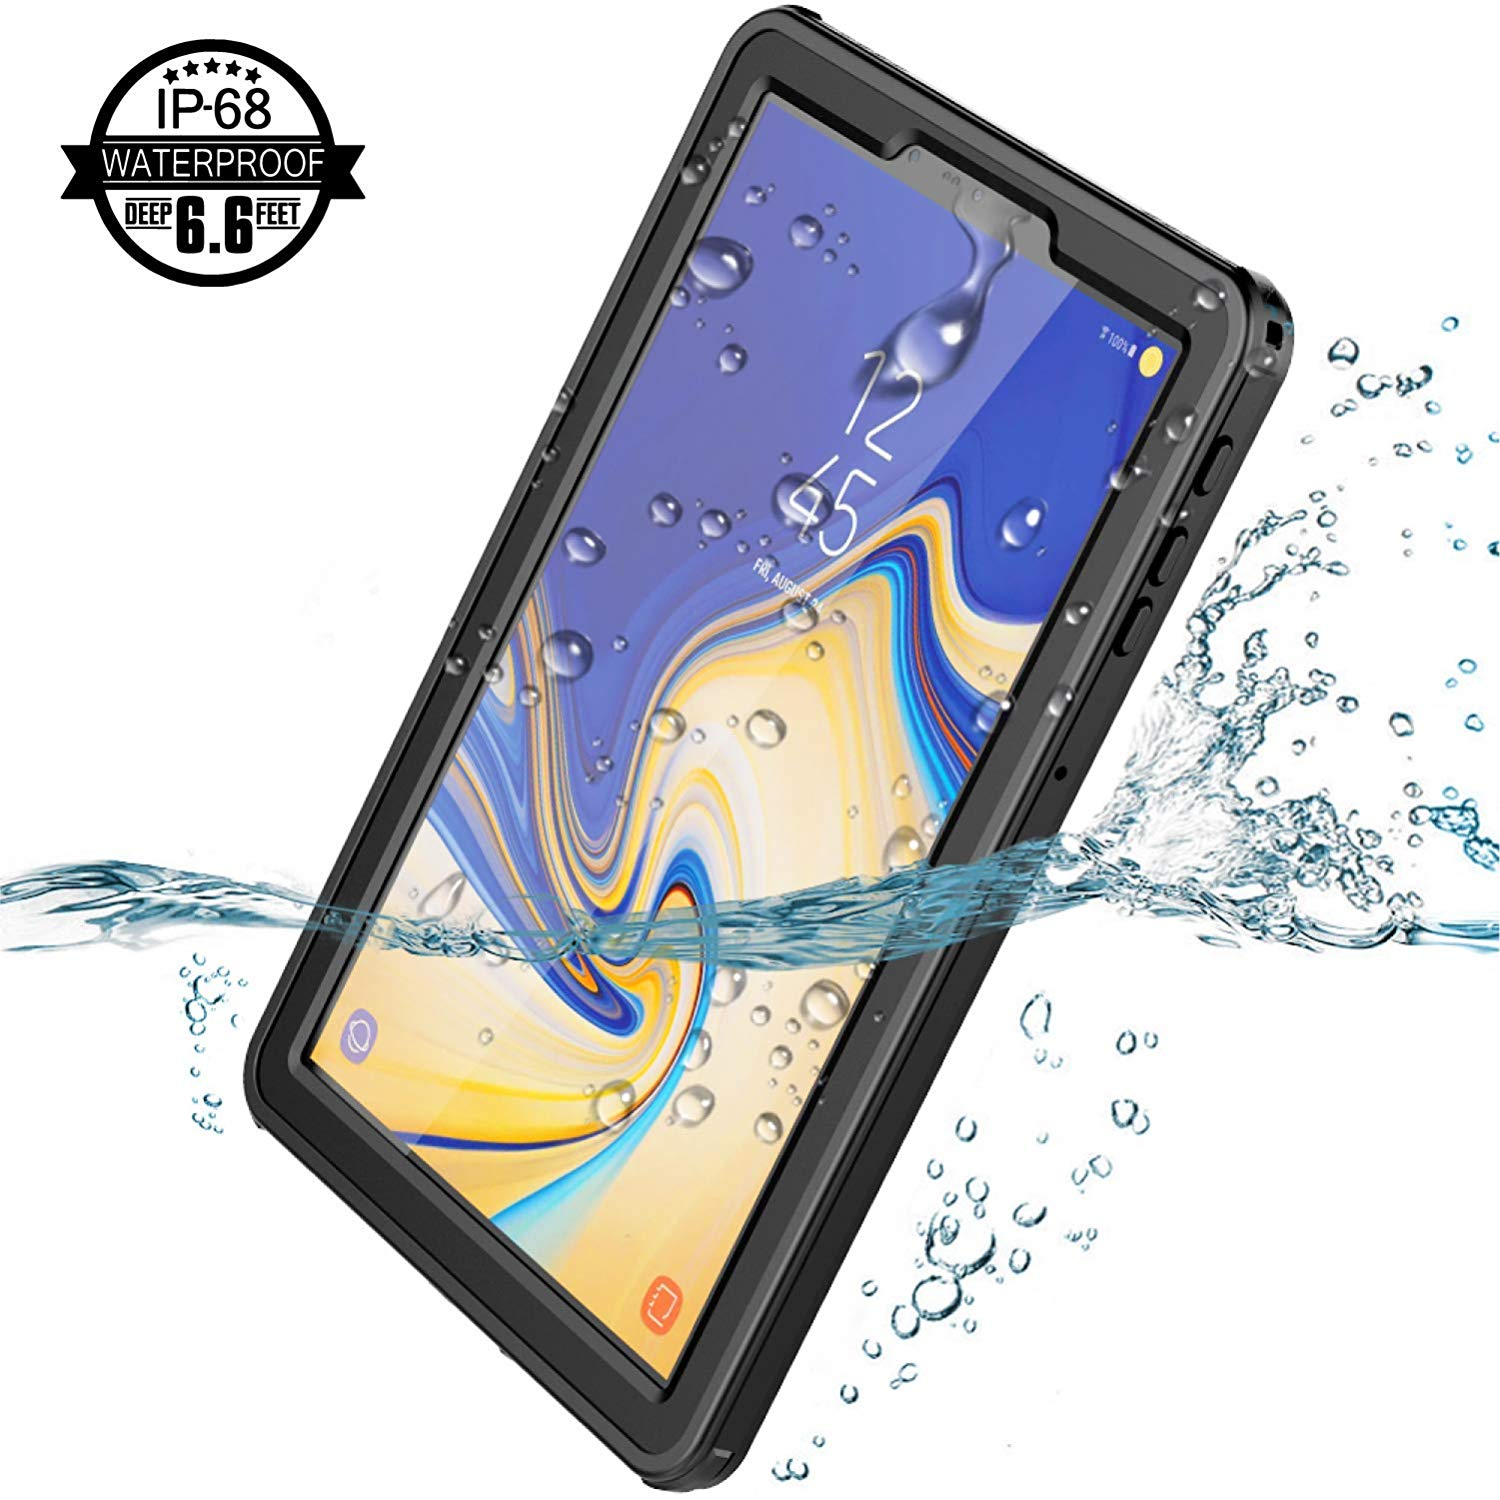 Samsung Galaxy Tab S4 Waterproof Case – Temdan